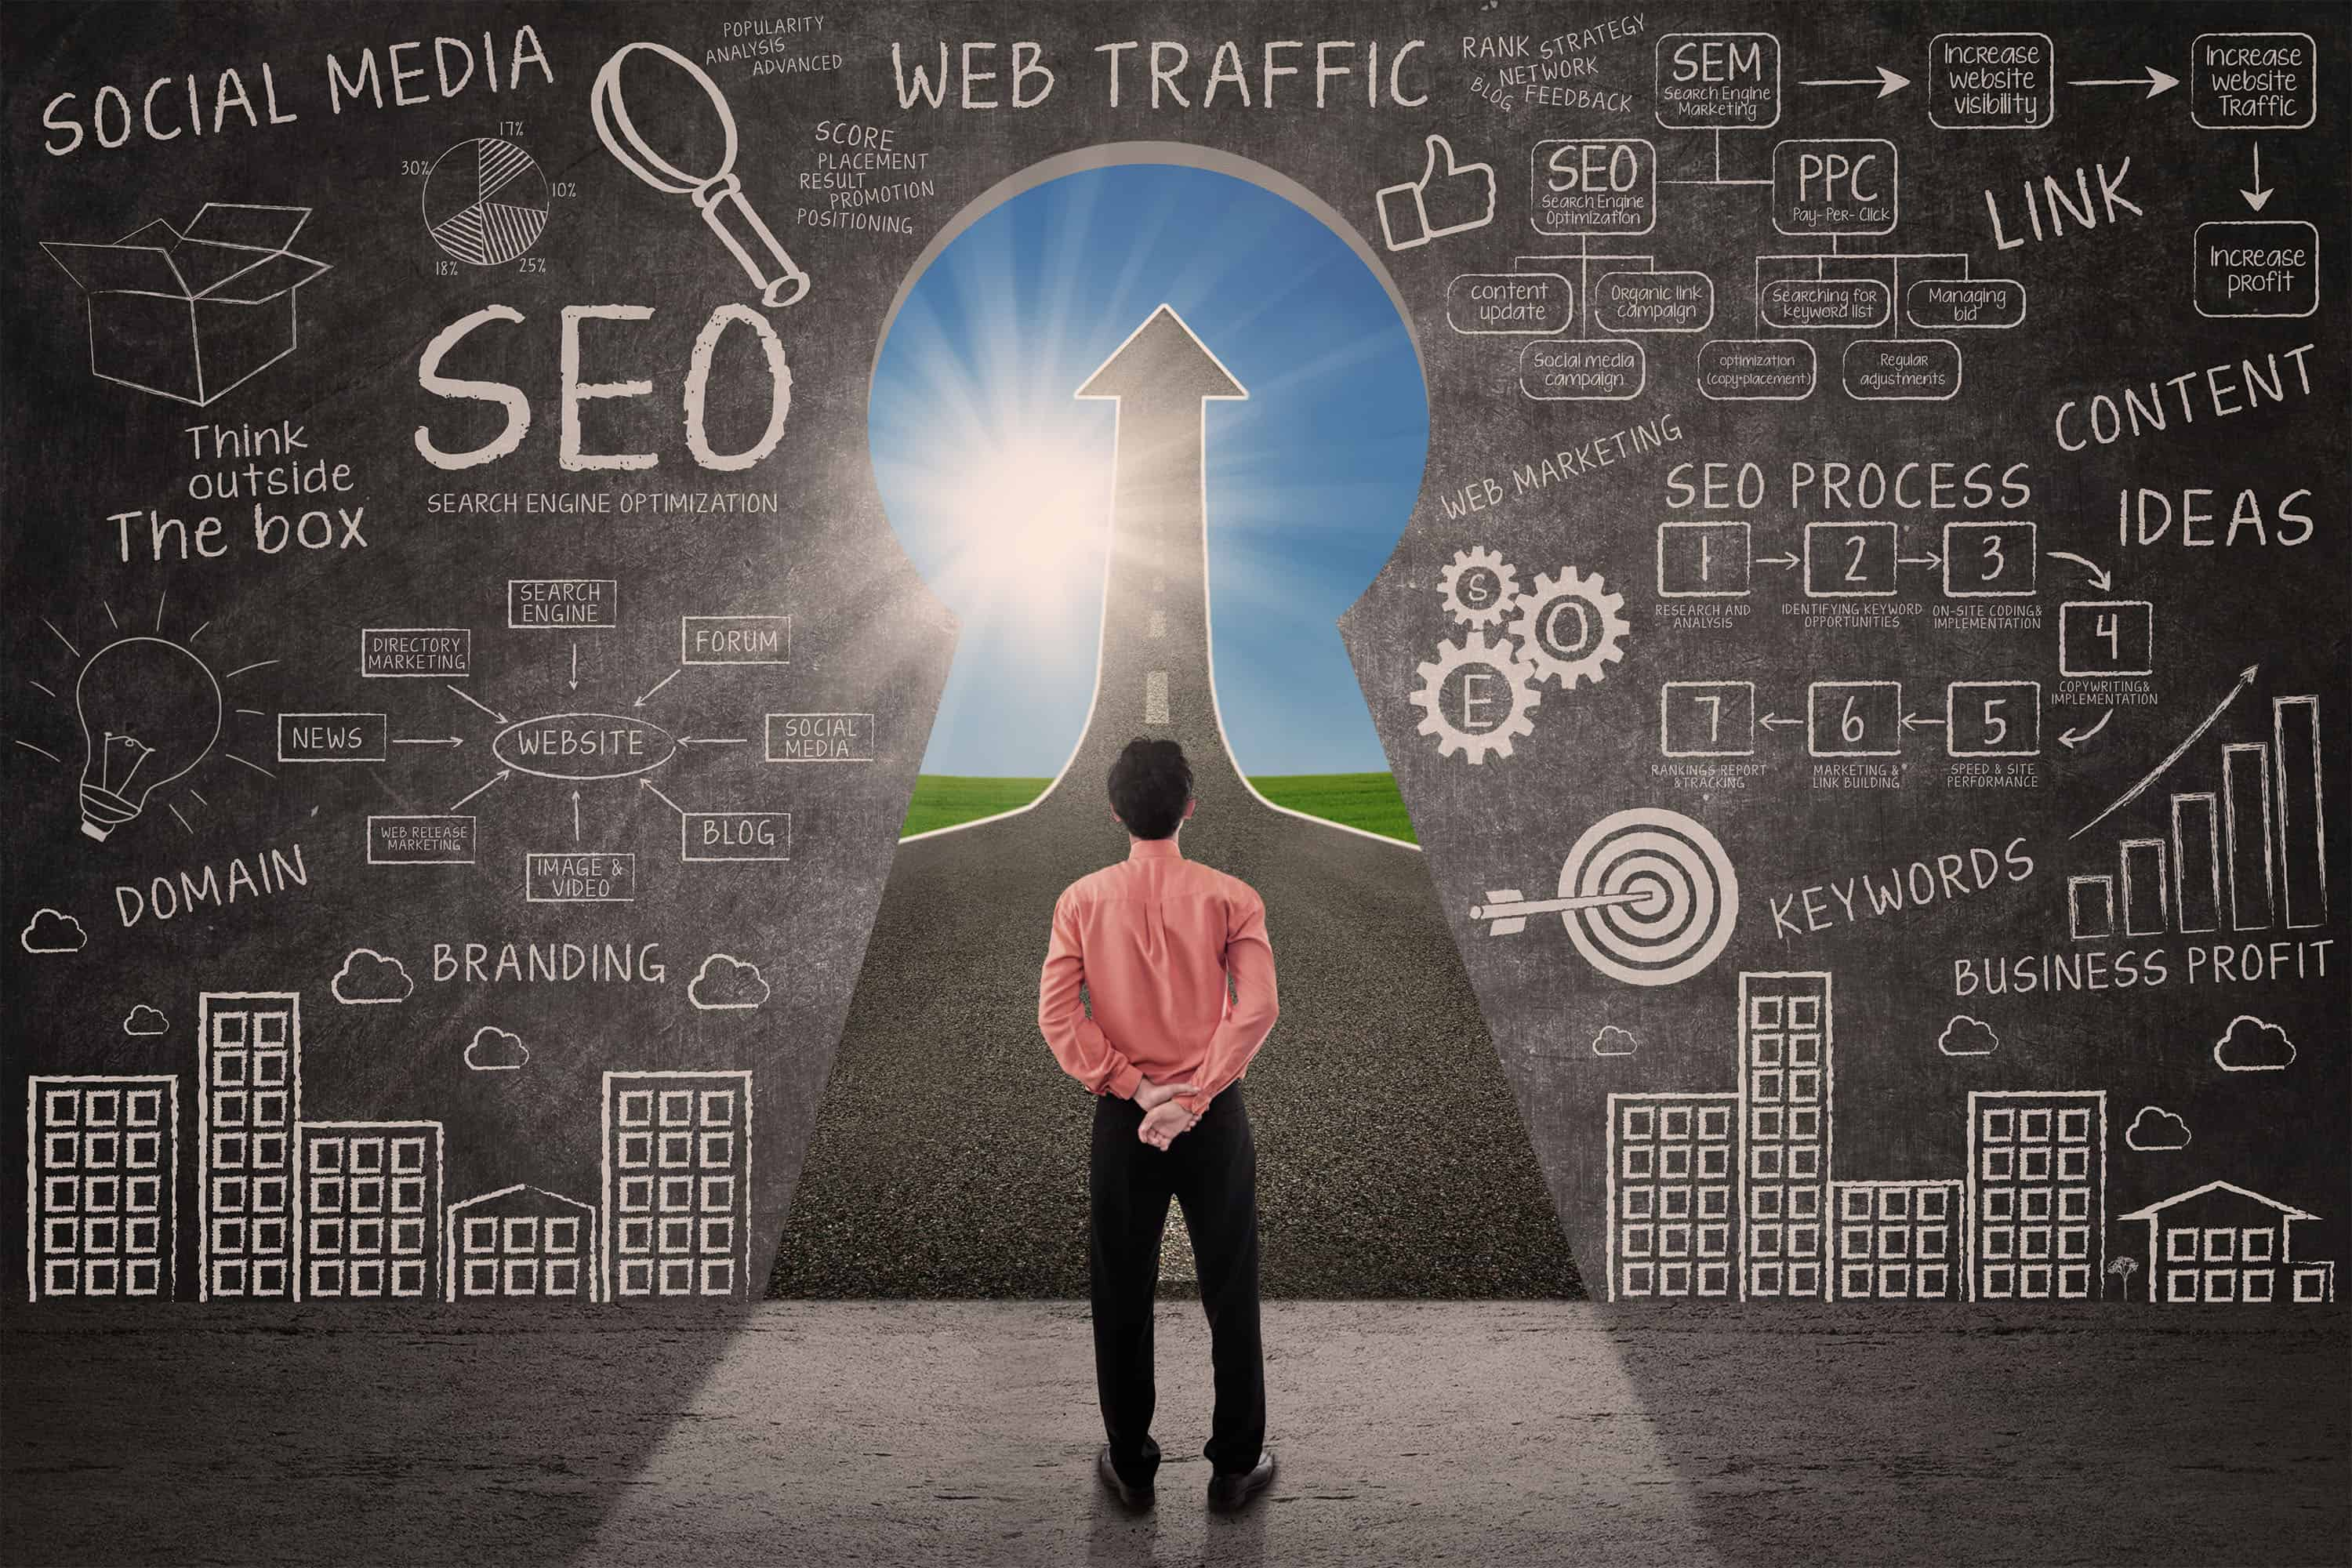 Focus on SEO - [Very Important]